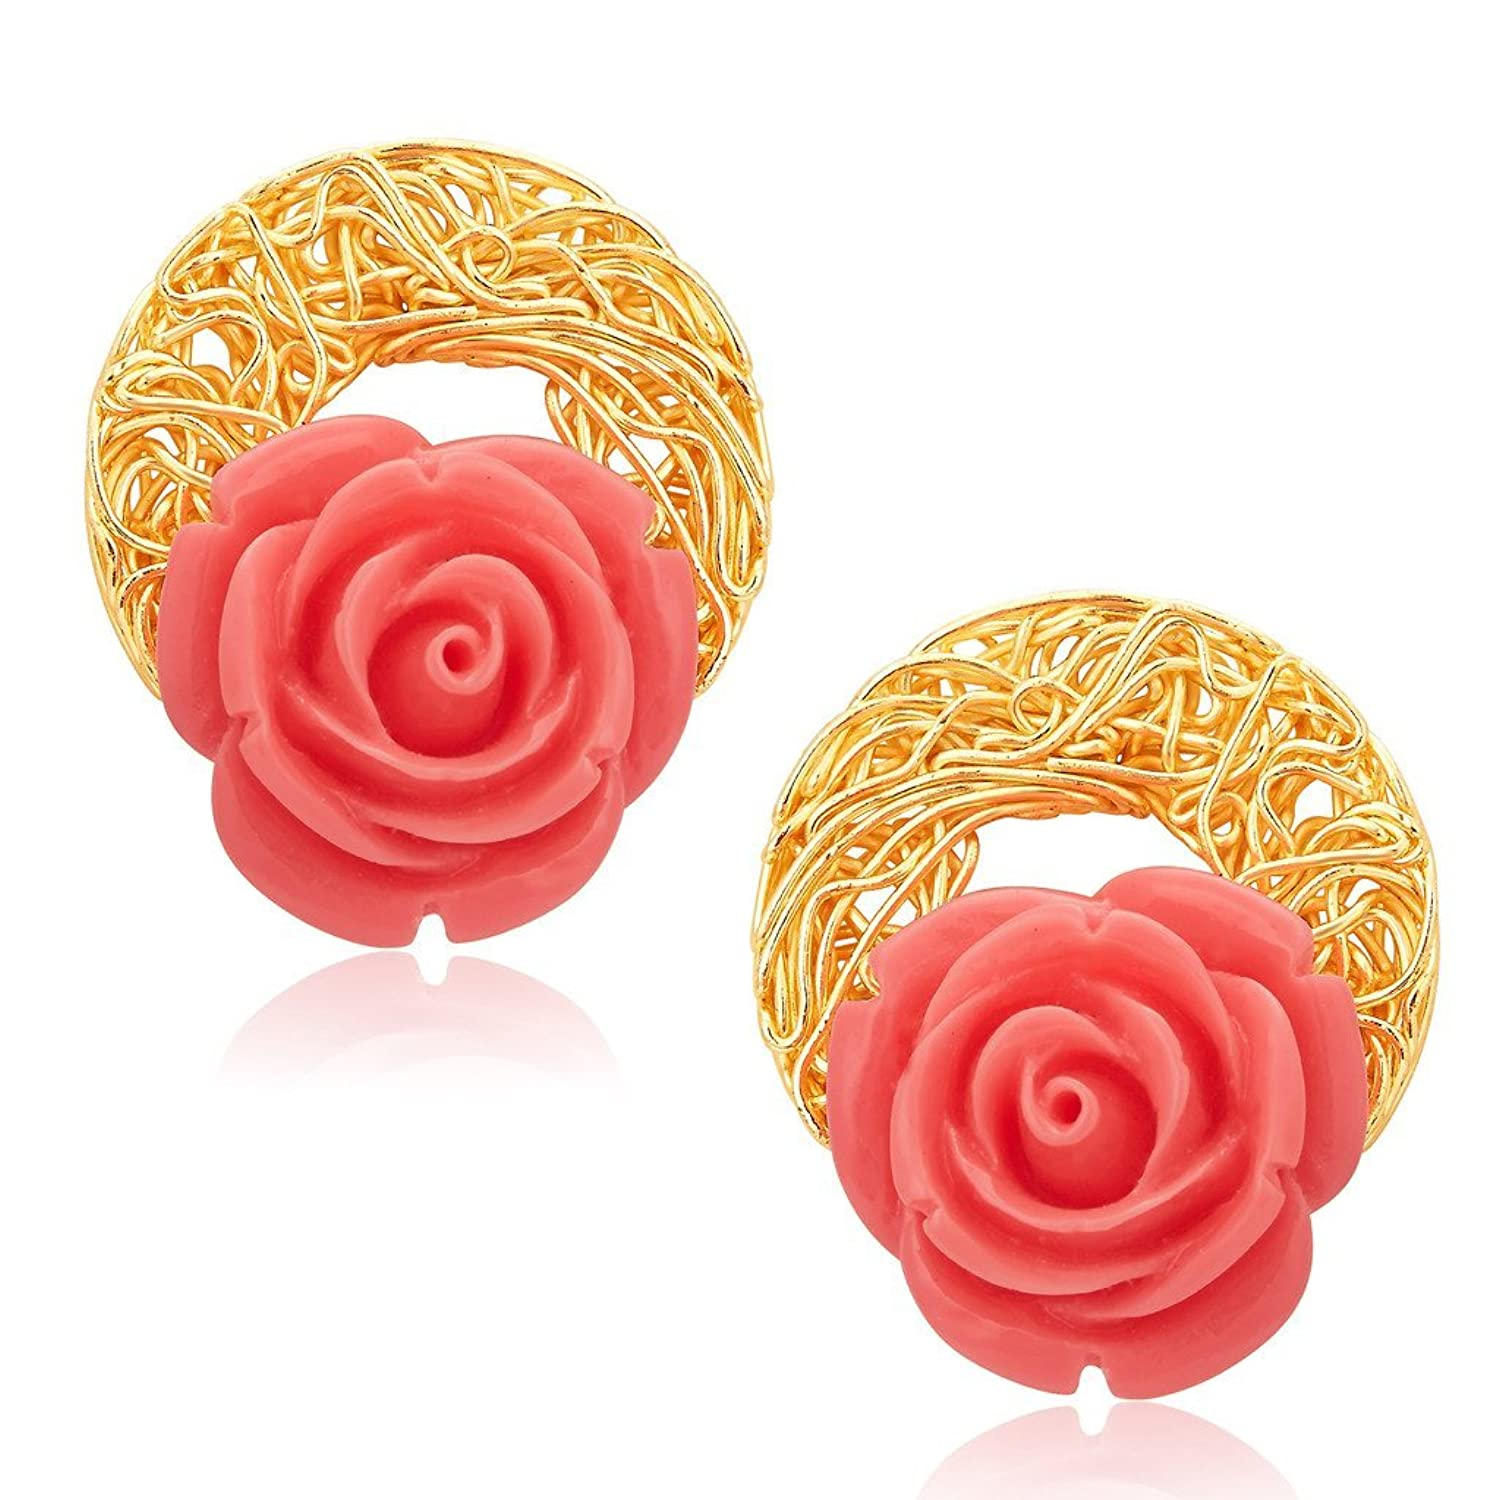 loop dogeared playing plated by goldplated stud ear double gold earrings